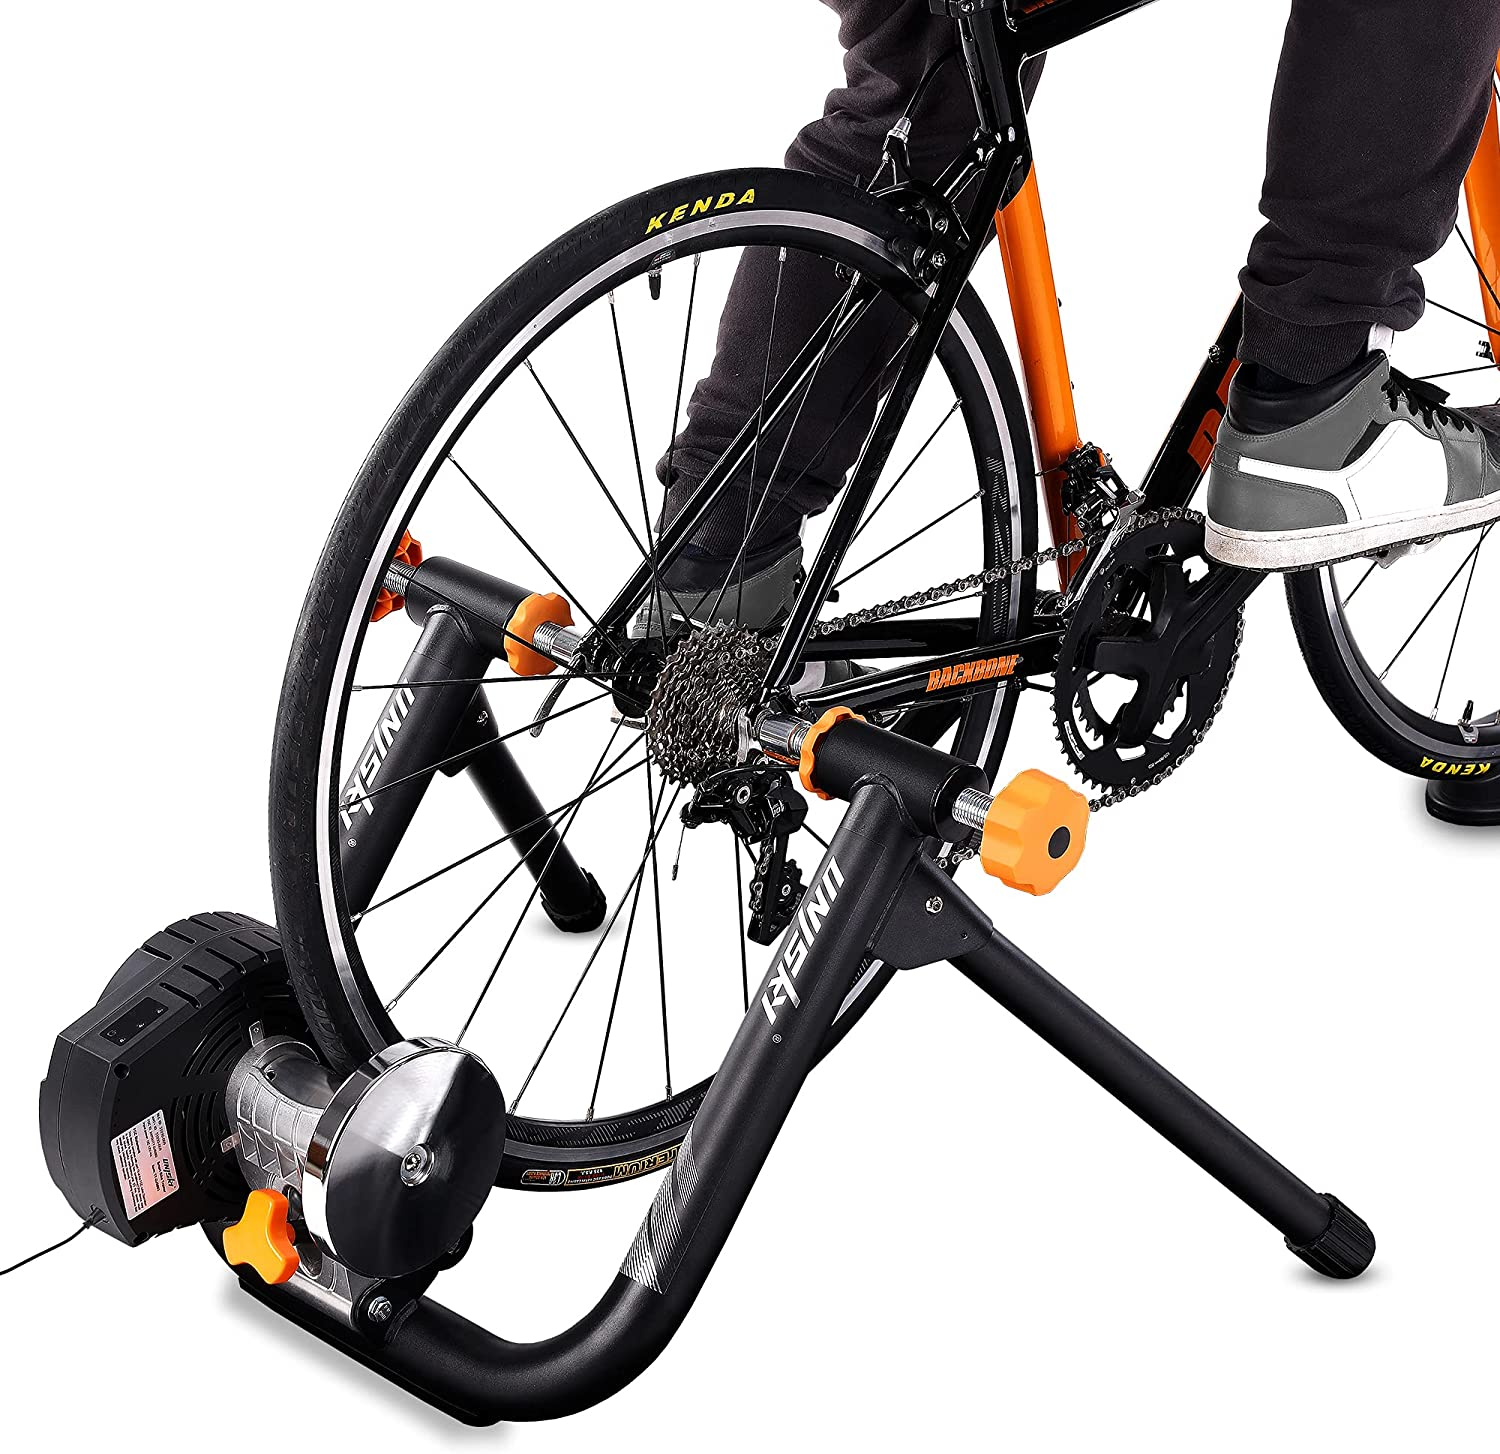 Unisky DJS3 Smart Bike Trainer Electromagnetic Resistance Trainer Indoor Riding Cycling Bicycle Trainer, Automatic Resistance Adjustment, Built-in Power Speed Sensor, ANT+, Bluetooth, Zwift Compatible : Sports & Outdoors